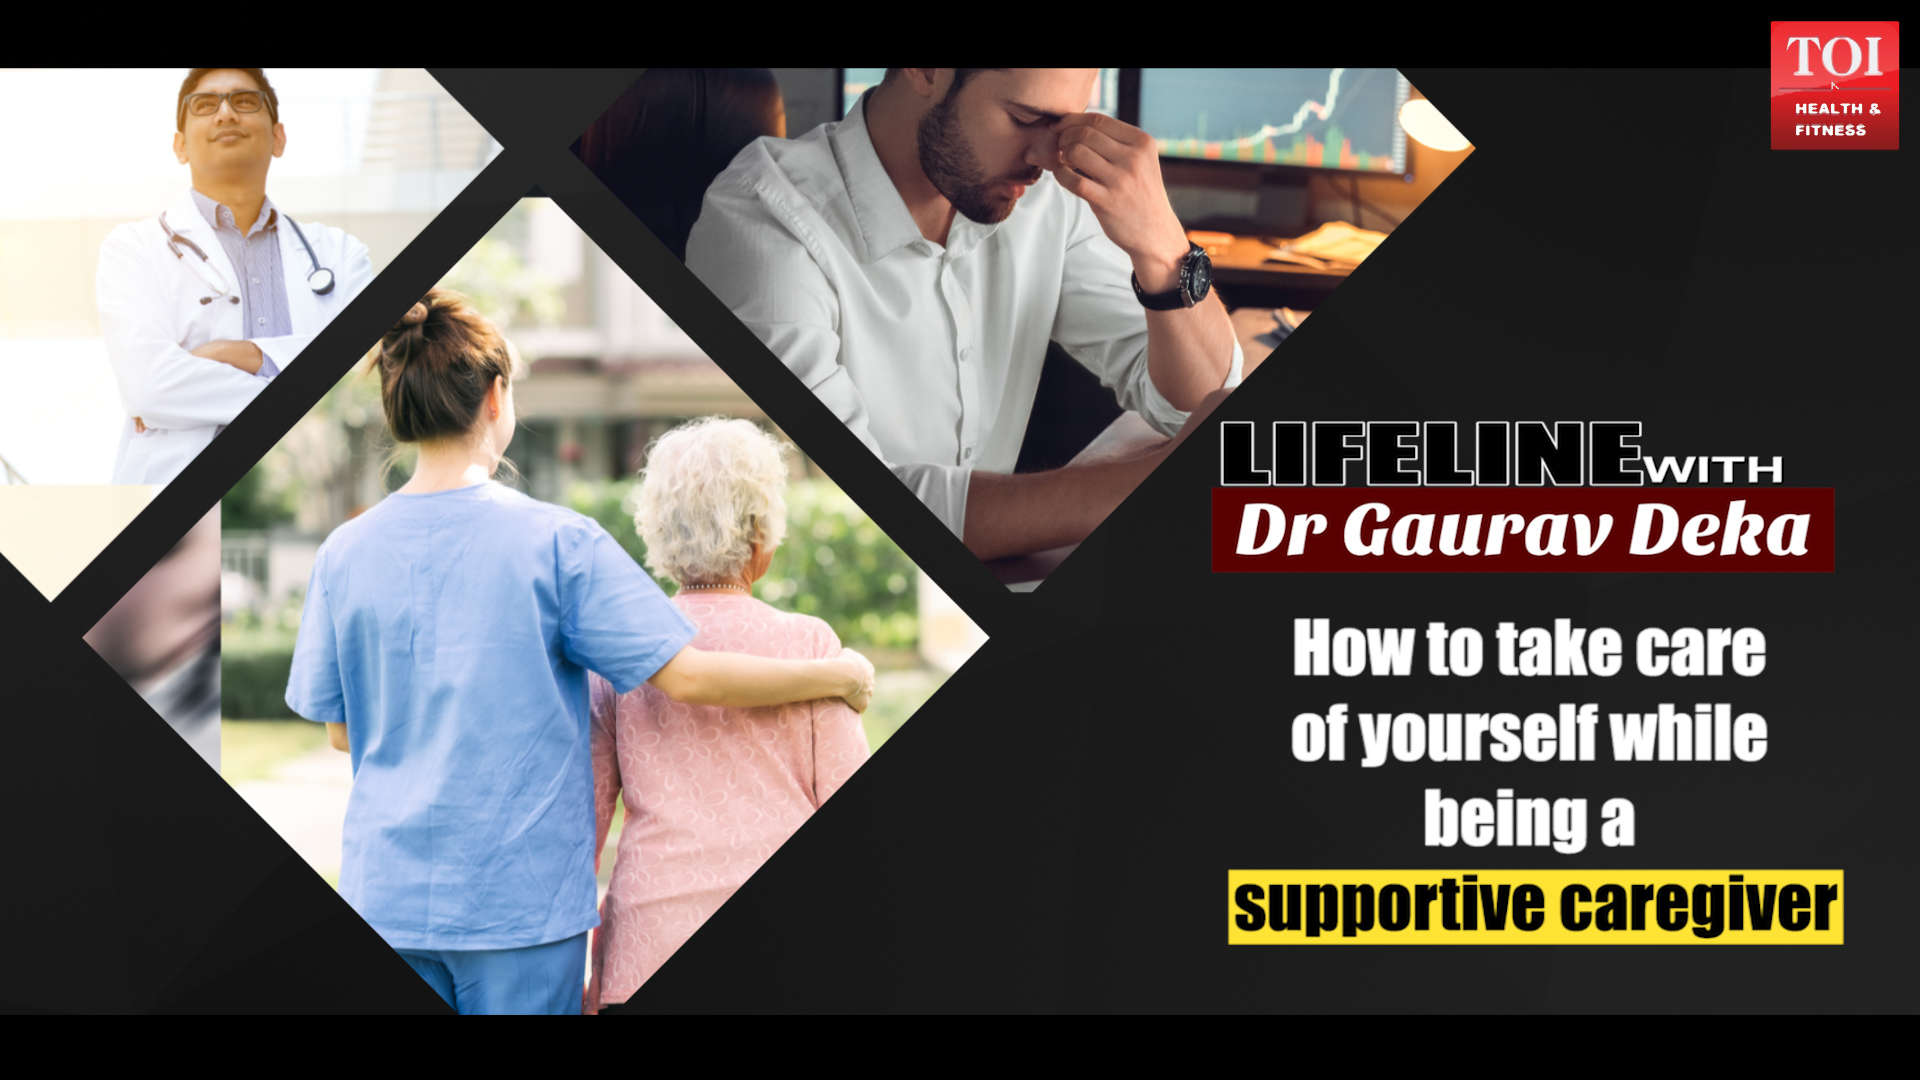 how-to-take-care-of-yourself-while-being-a-supportive-caregiver-by-dr-gaurav-deka